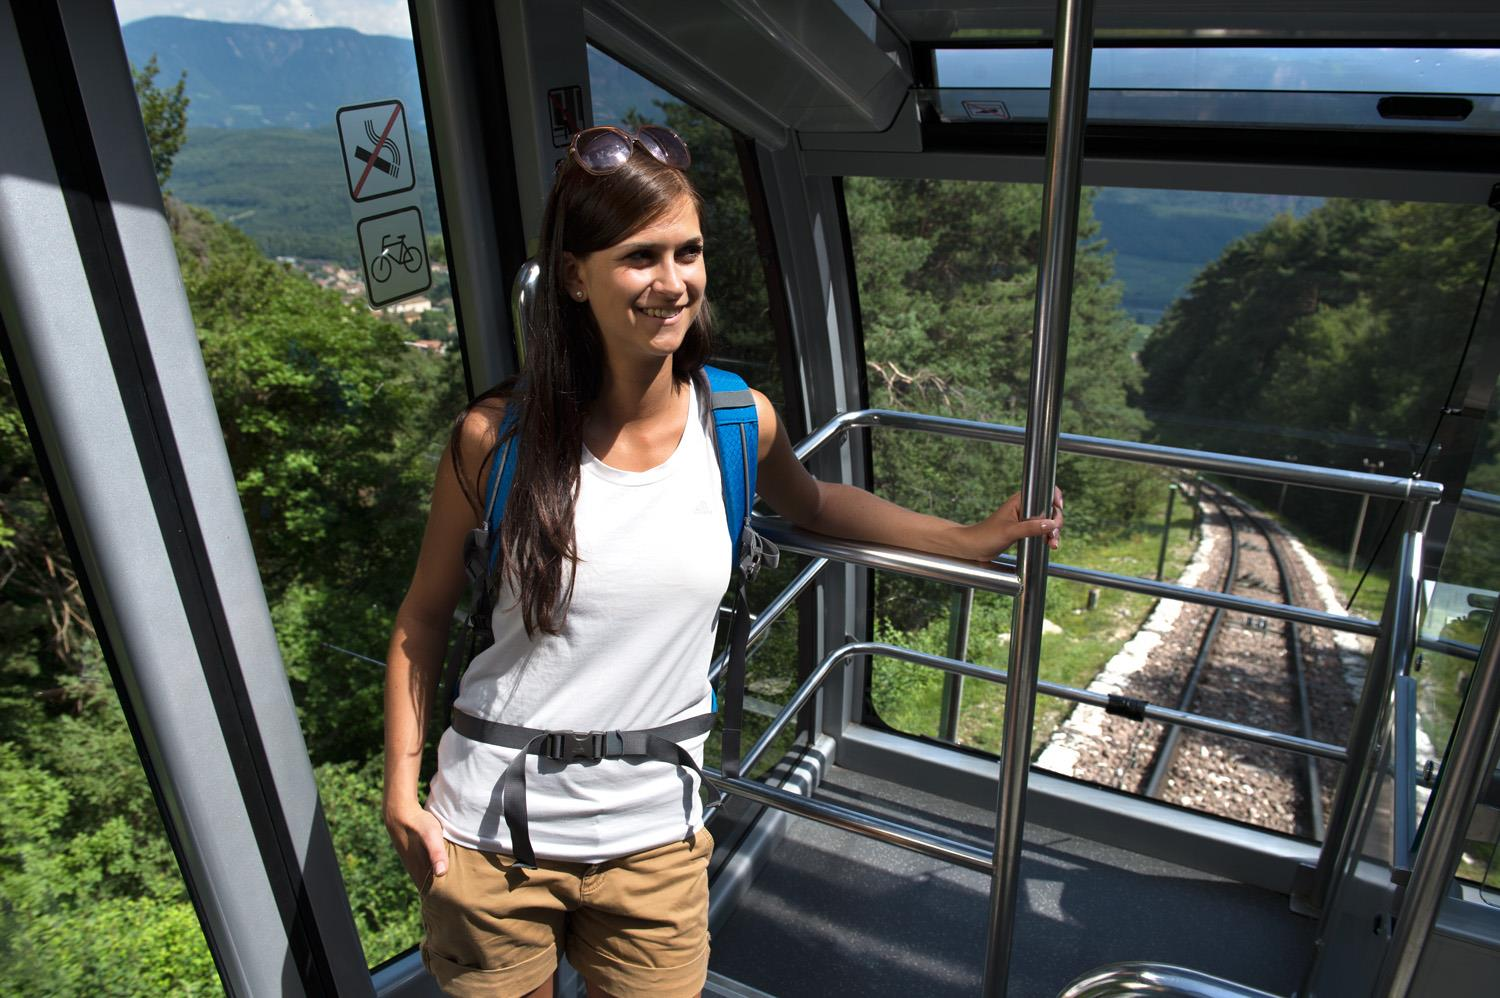 The Mendel Cable Car